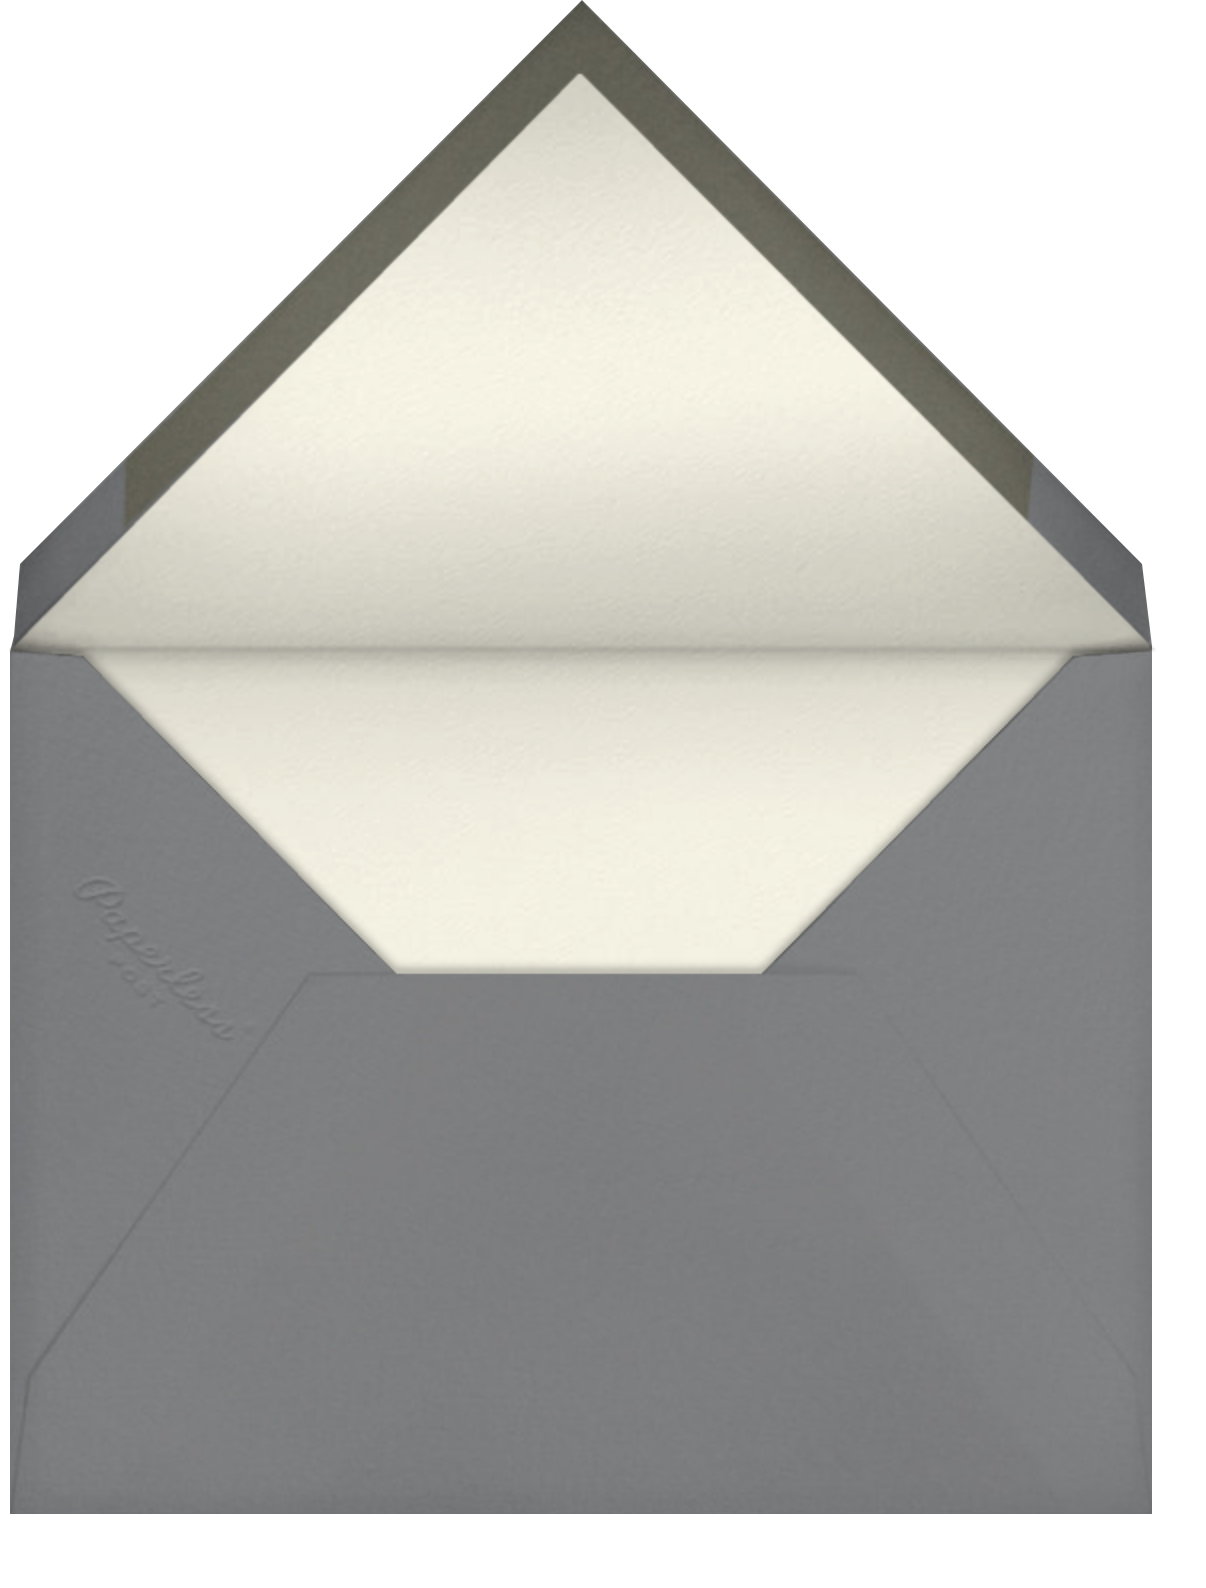 Sybilla (Invitation) - Chinchilla - Paperless Post - All - envelope back